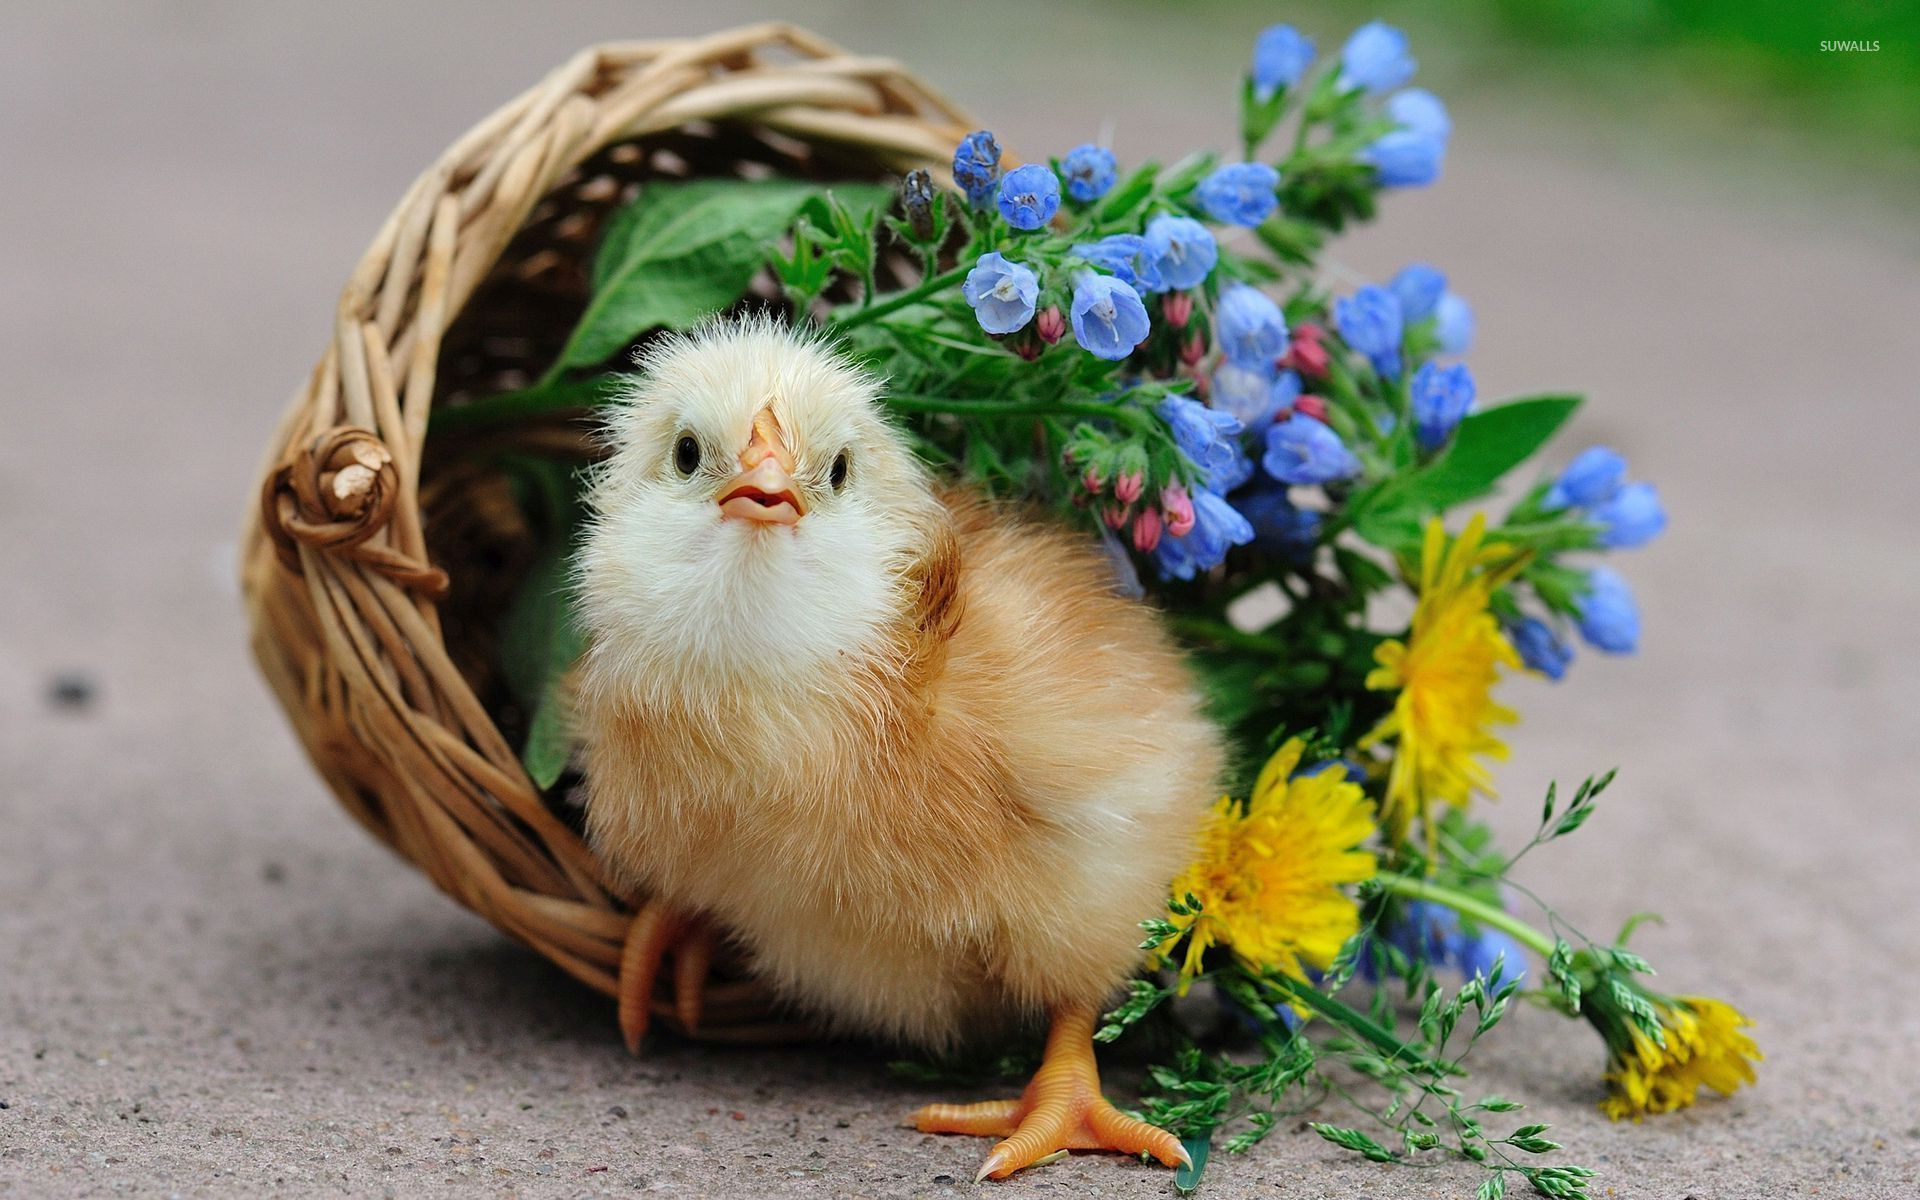 Chick in the basket wallpapers